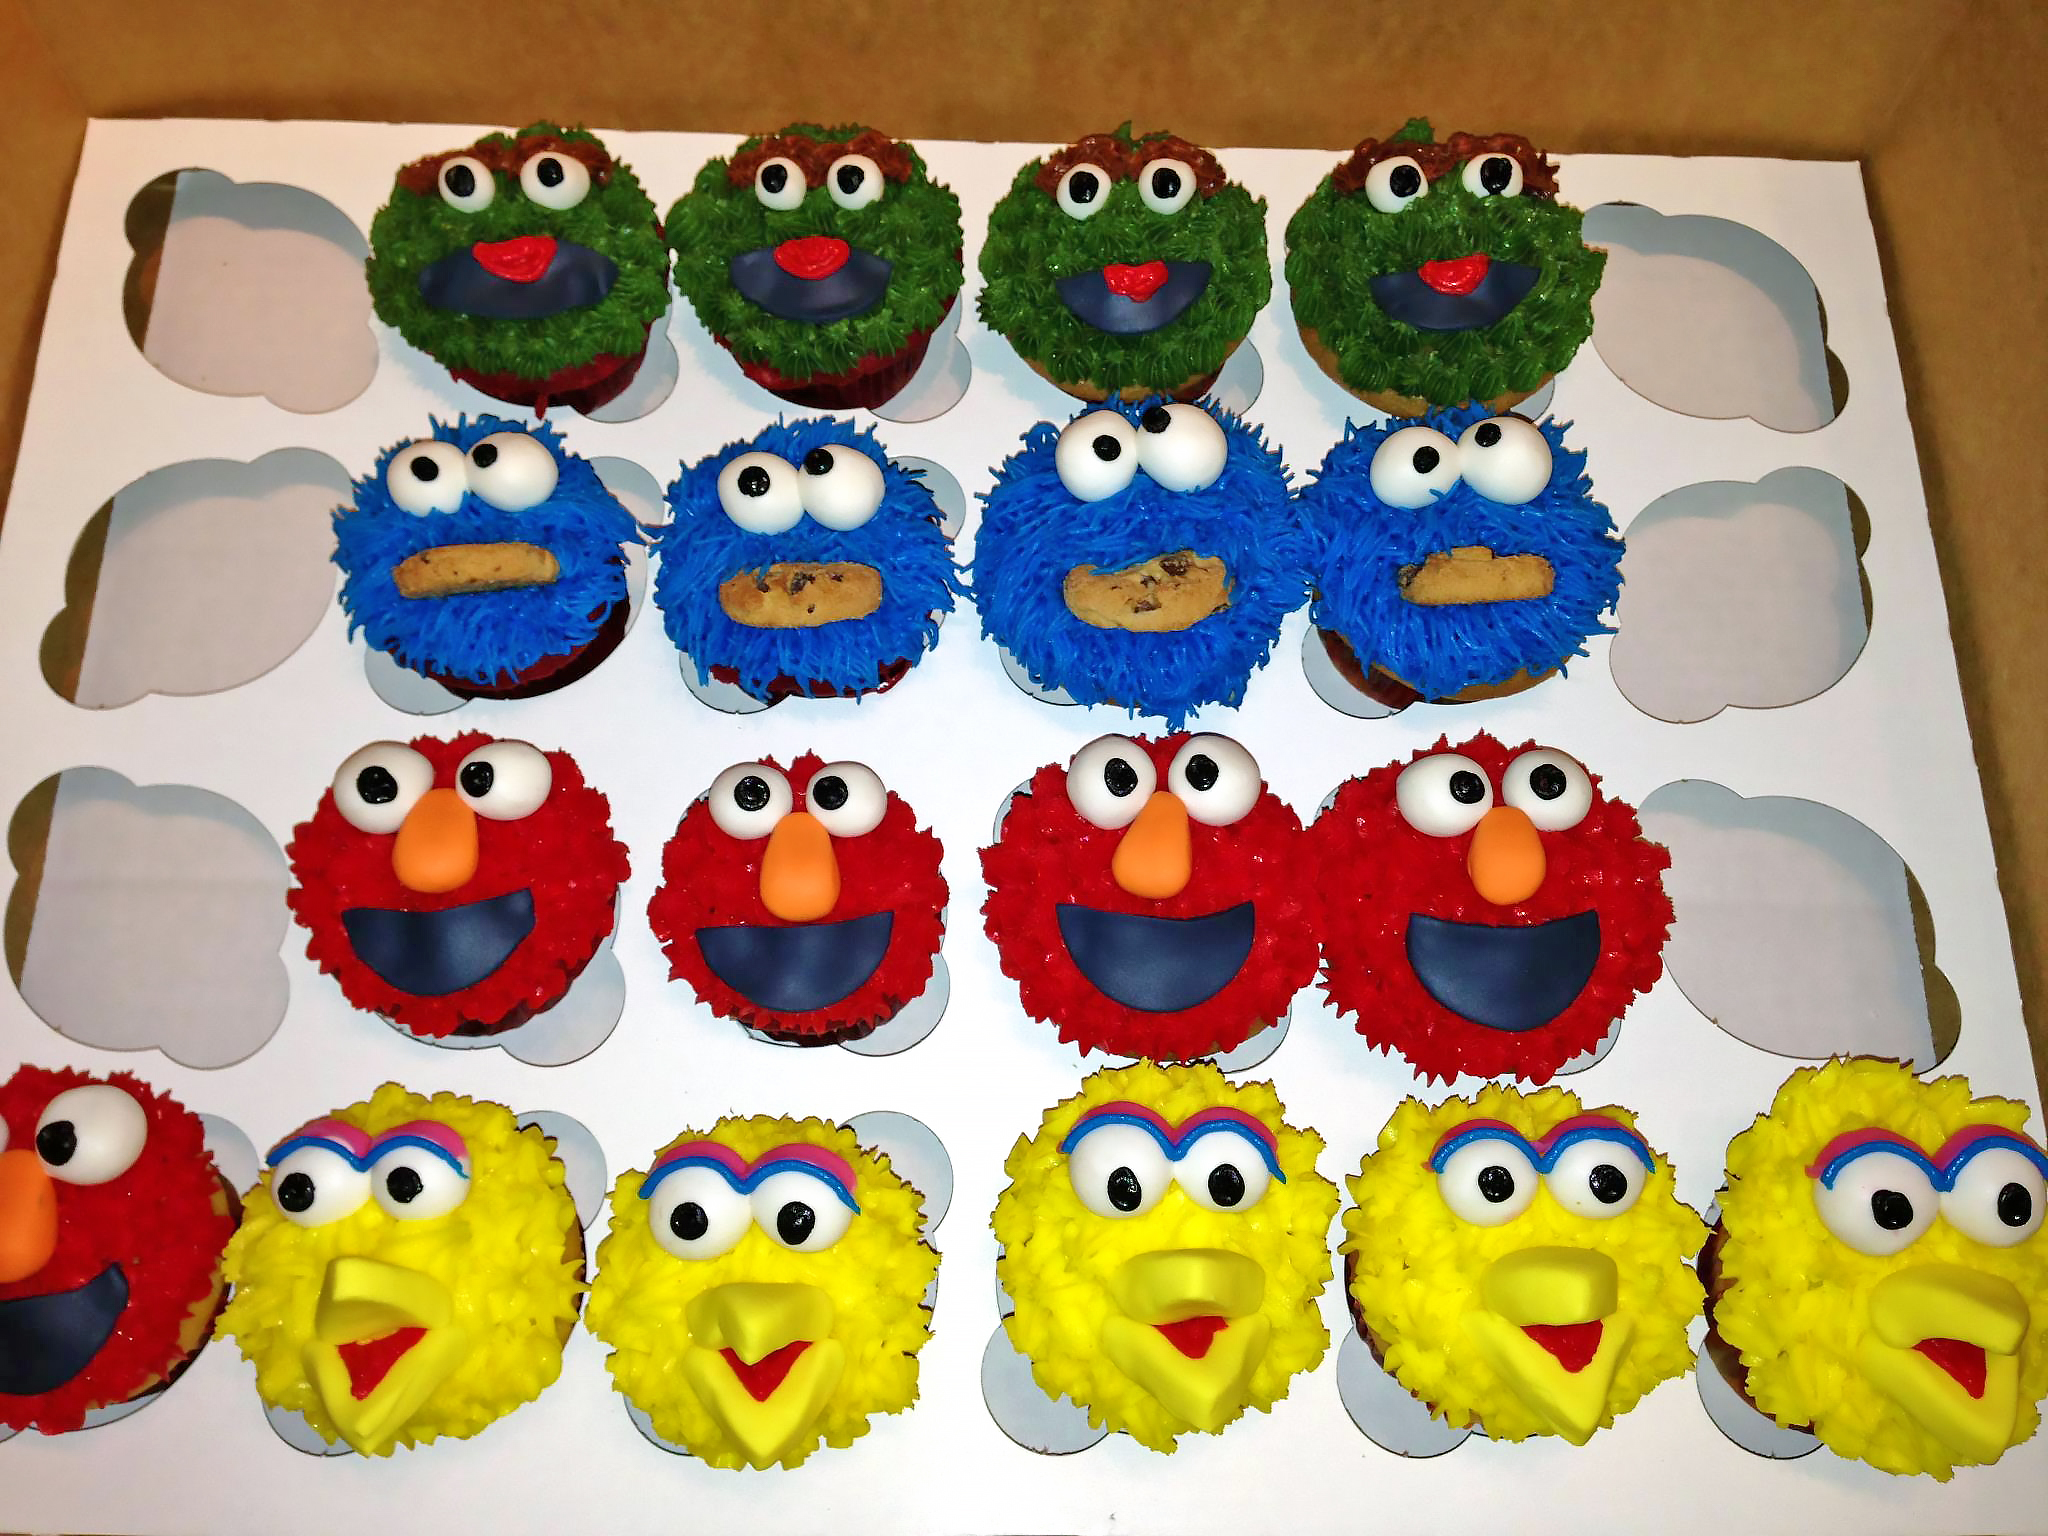 big-bird-birthday-cookie-monster-cupcakes-elmo-oscar-the-grouch-sesame-street-998